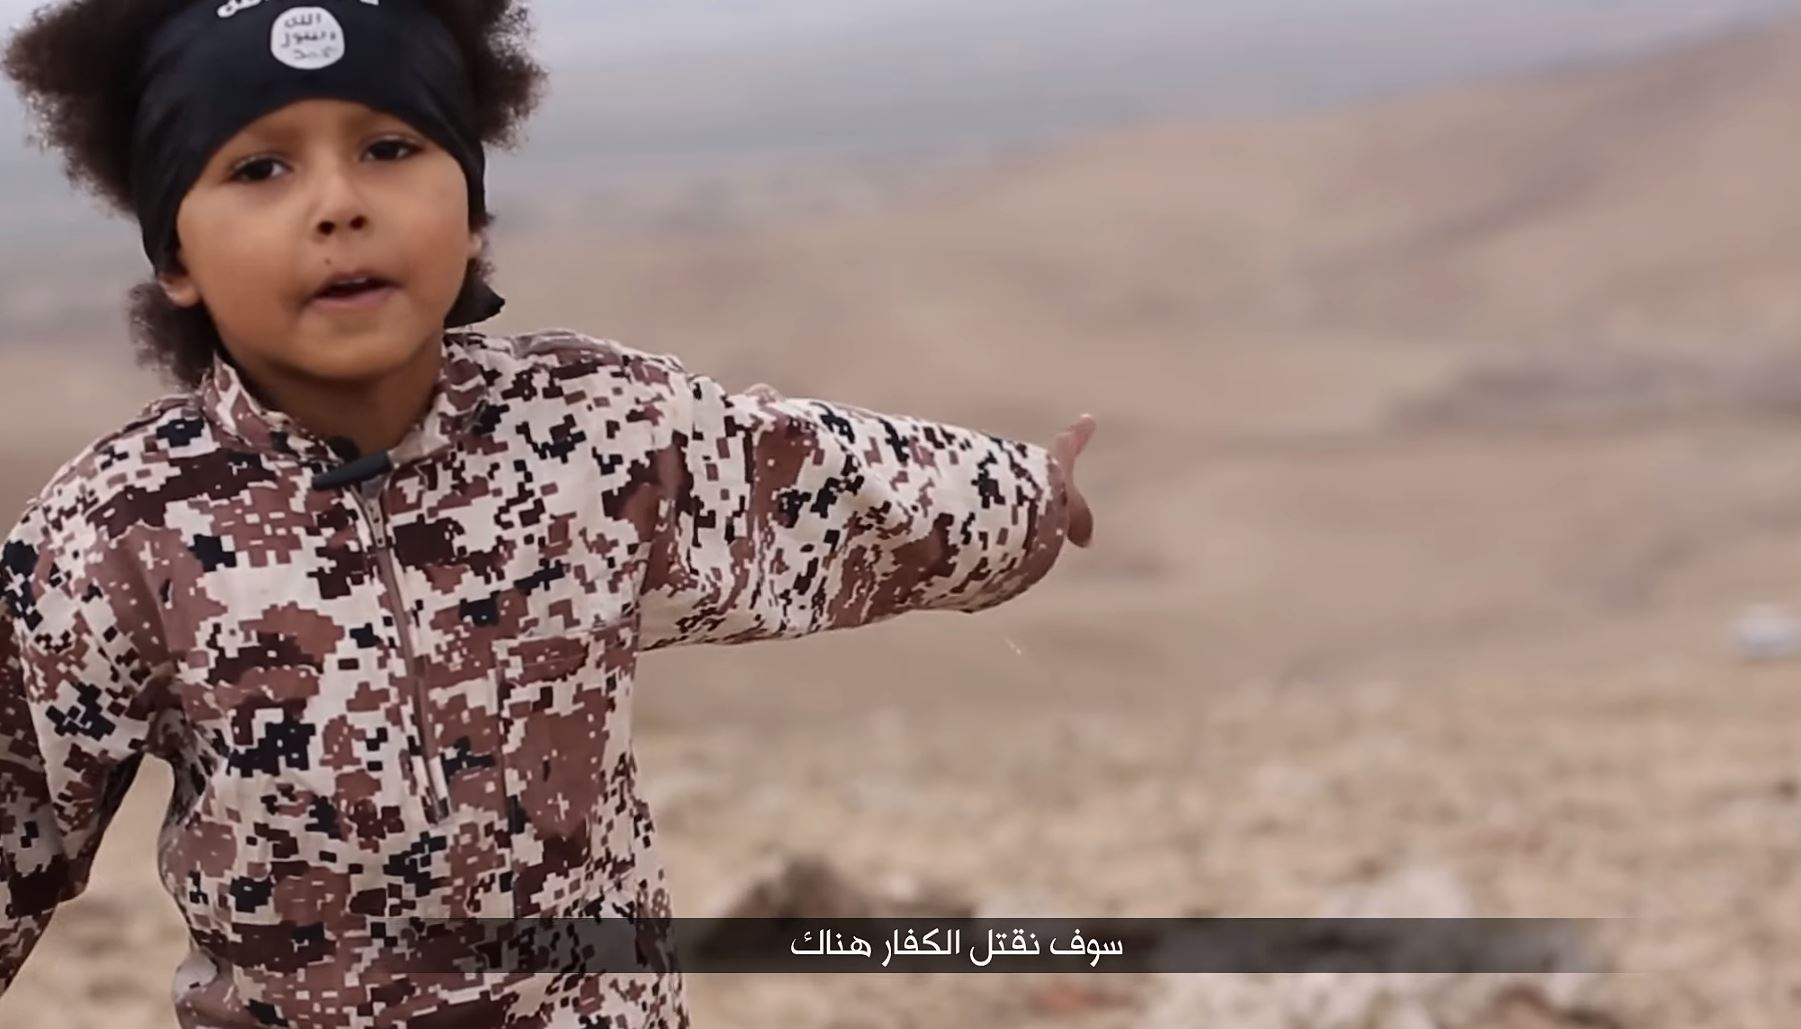 A young boy in the video apparently points to where the men should be killed